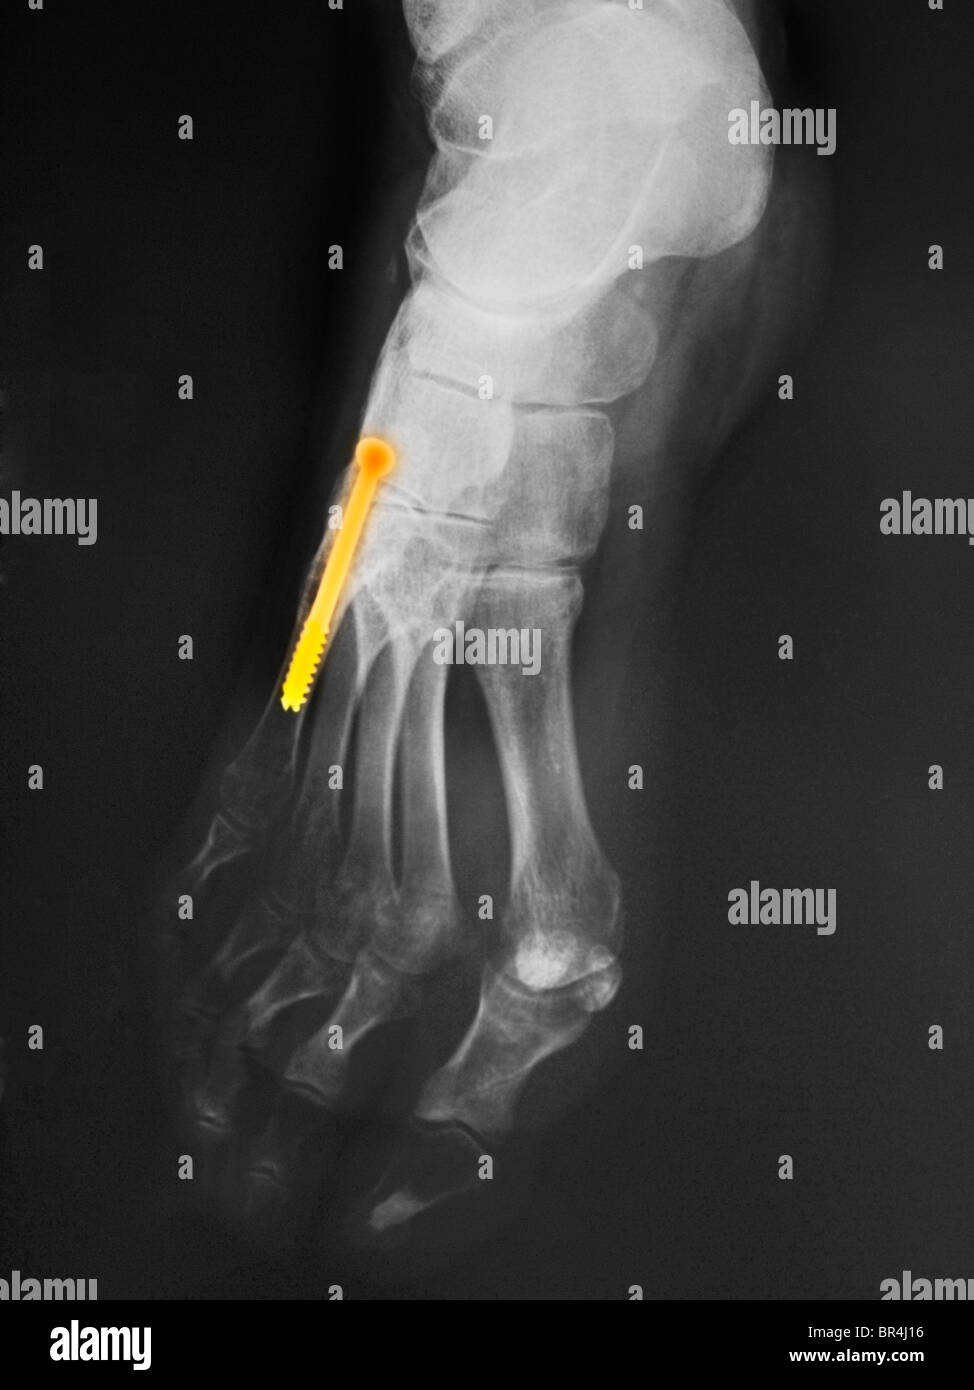 x-ray of the leg of a 43 year old woman who had  surgery on the 5th metatarsal where there is a screw into the bone - Stock Image